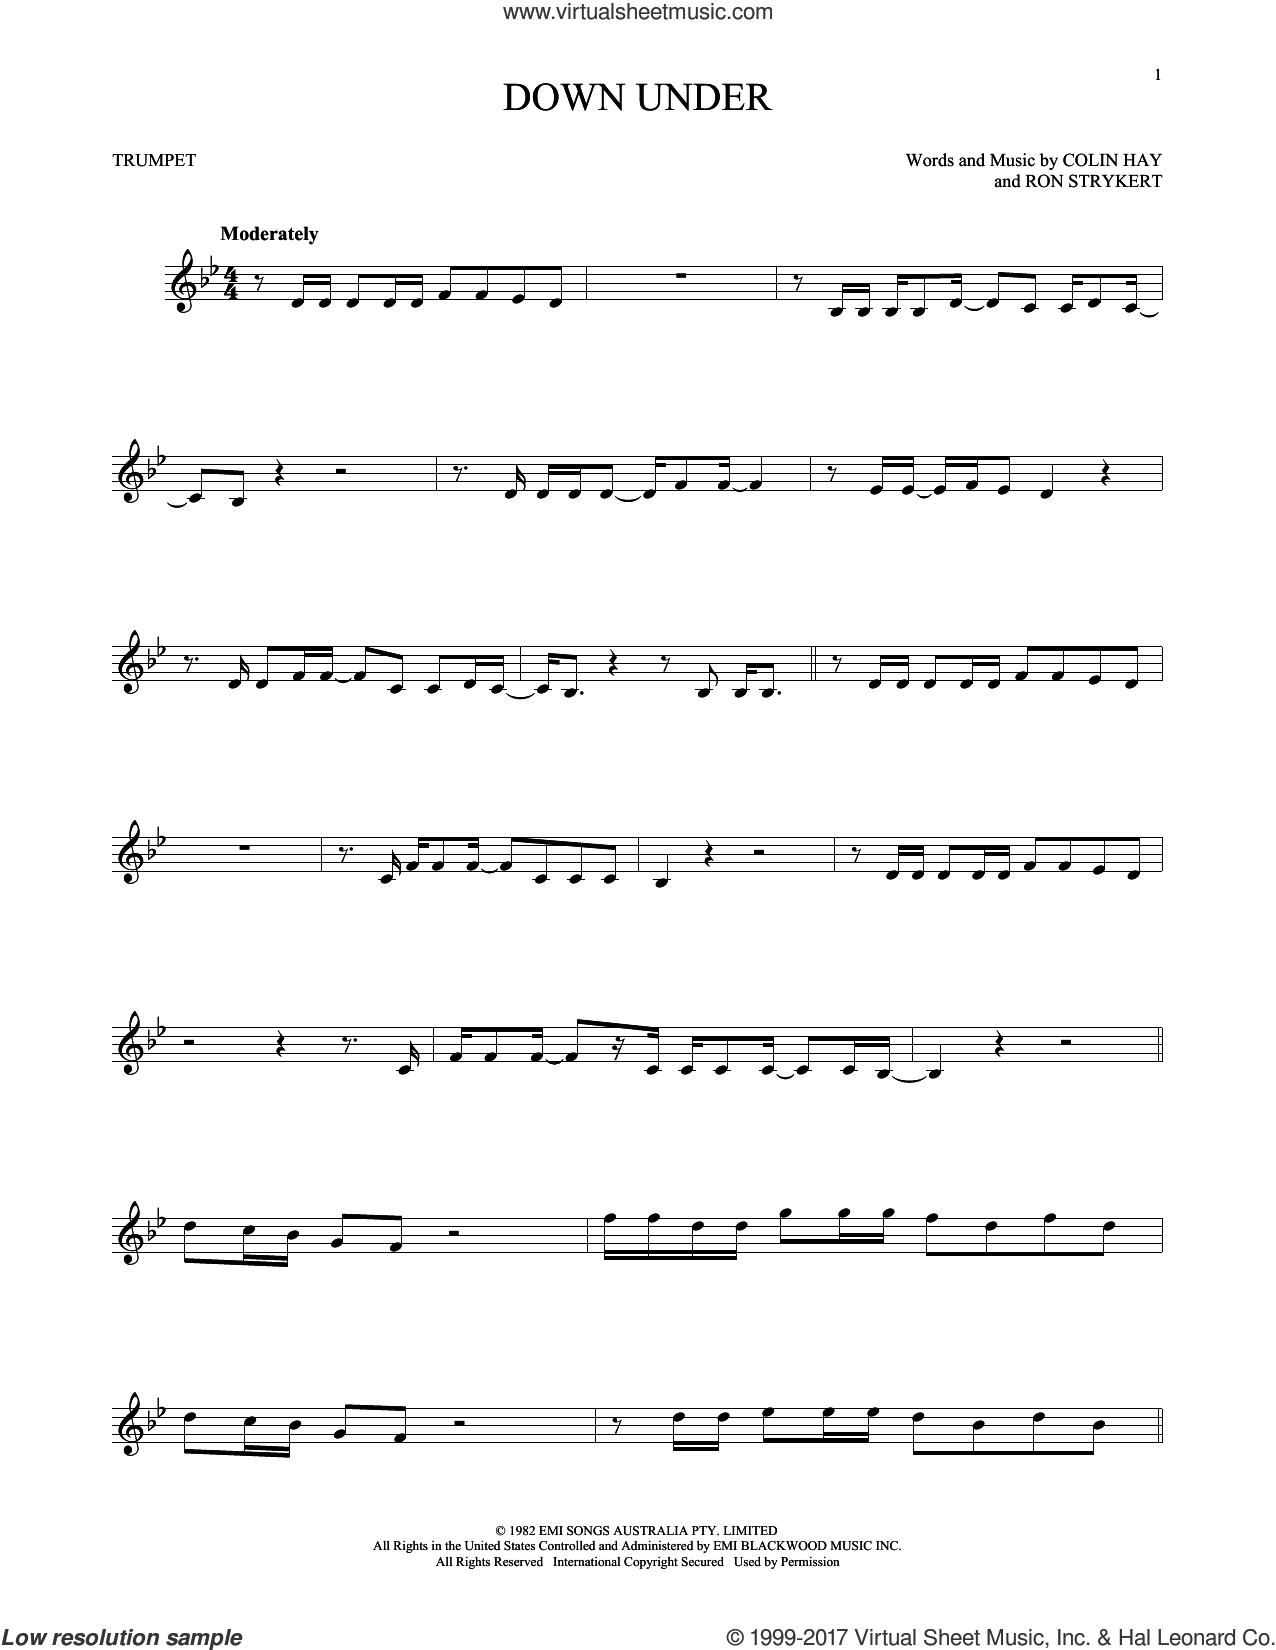 Down Under sheet music for trumpet solo by Men At Work, Colin Hay and Ron Strykert, intermediate skill level